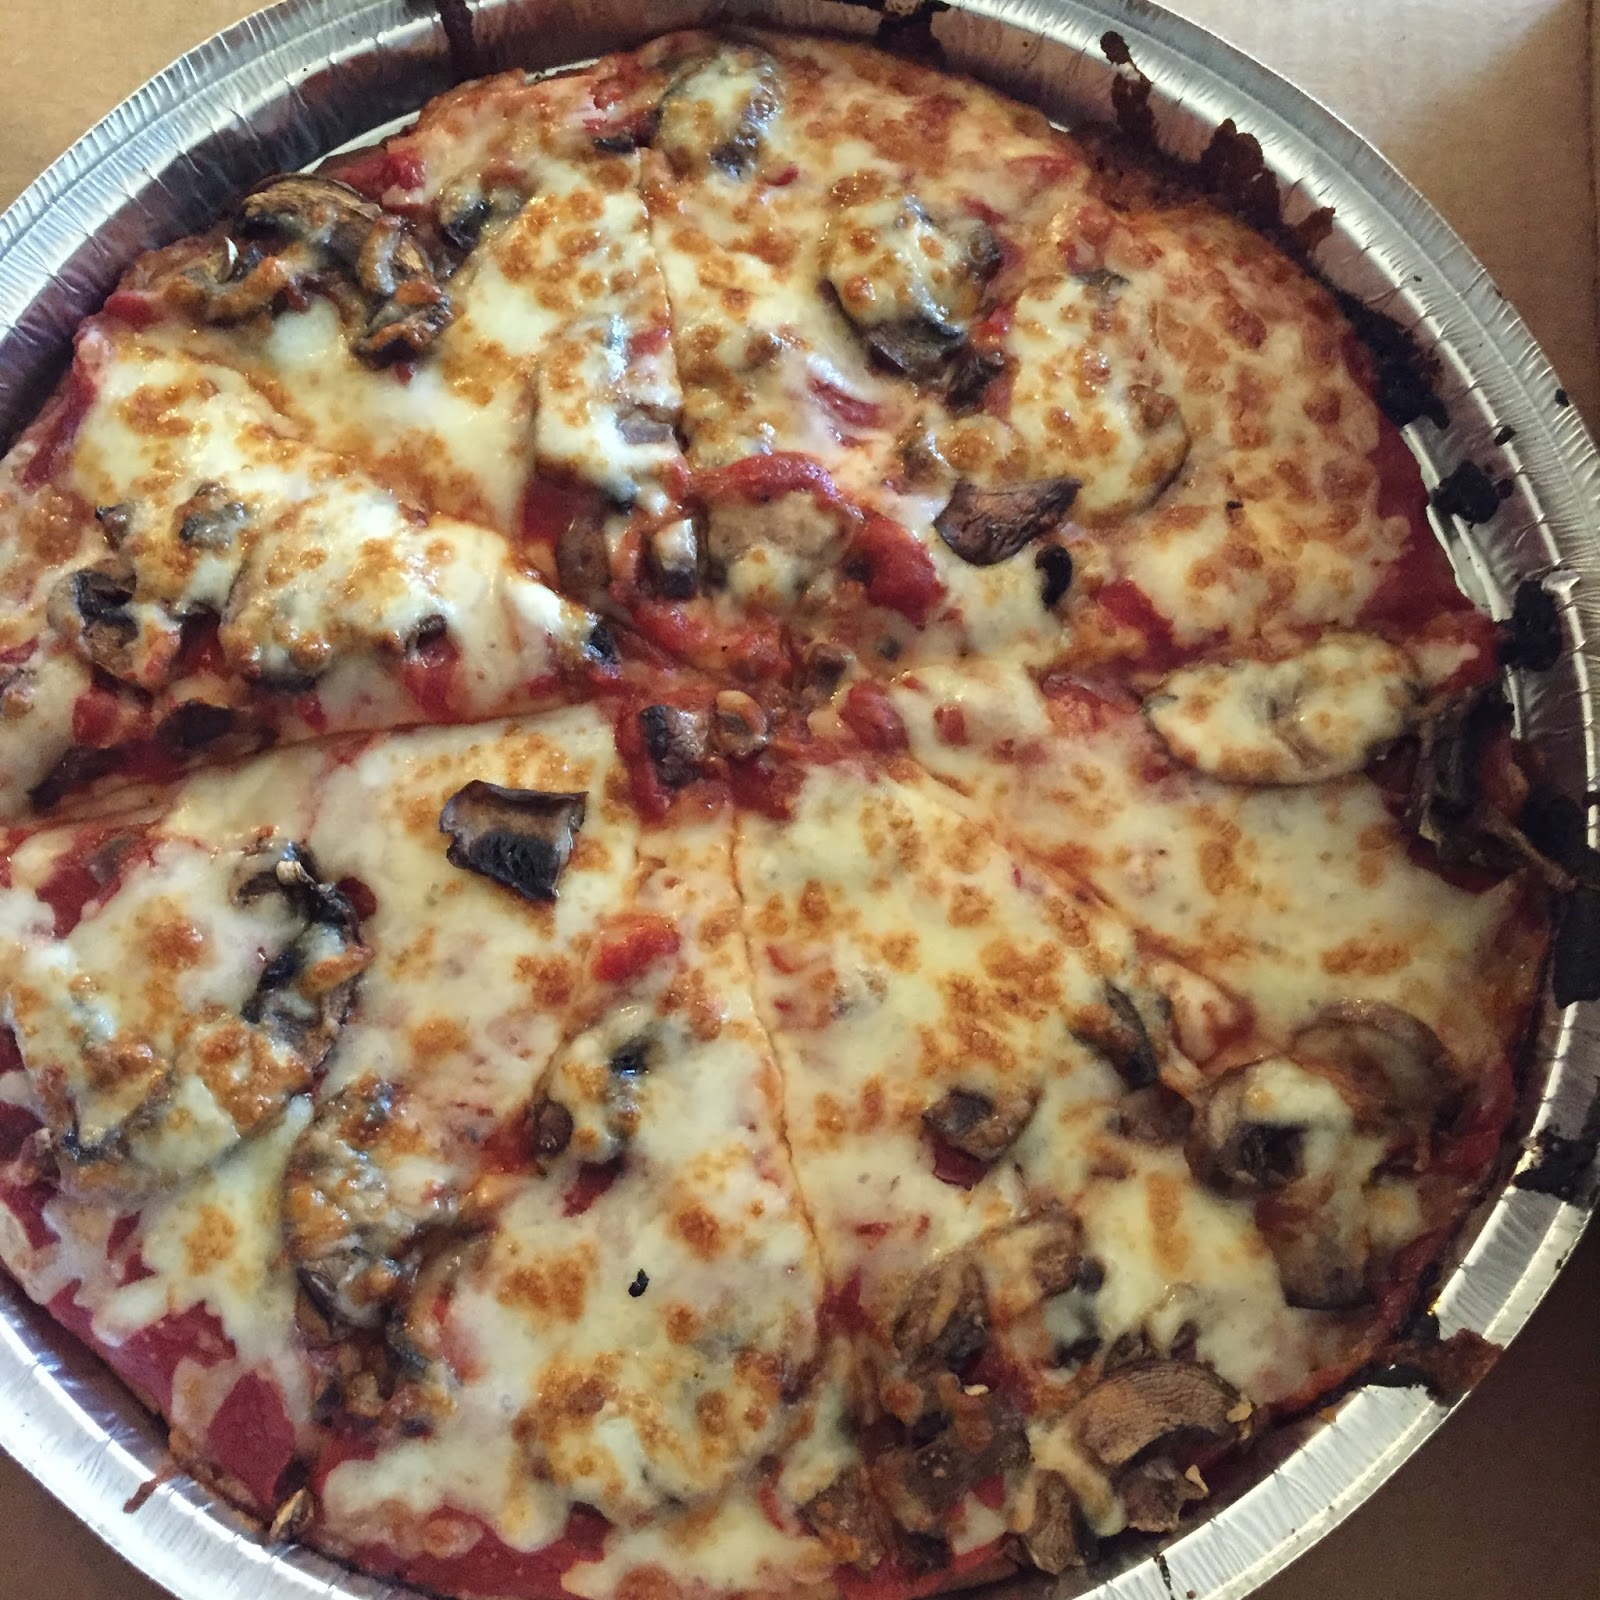 geeky gluten free foodie dining out pizza cottage inn rh geekyglutenfreefoodie blogspot com cottage inn gluten free menu cottage inn gluten free coupon